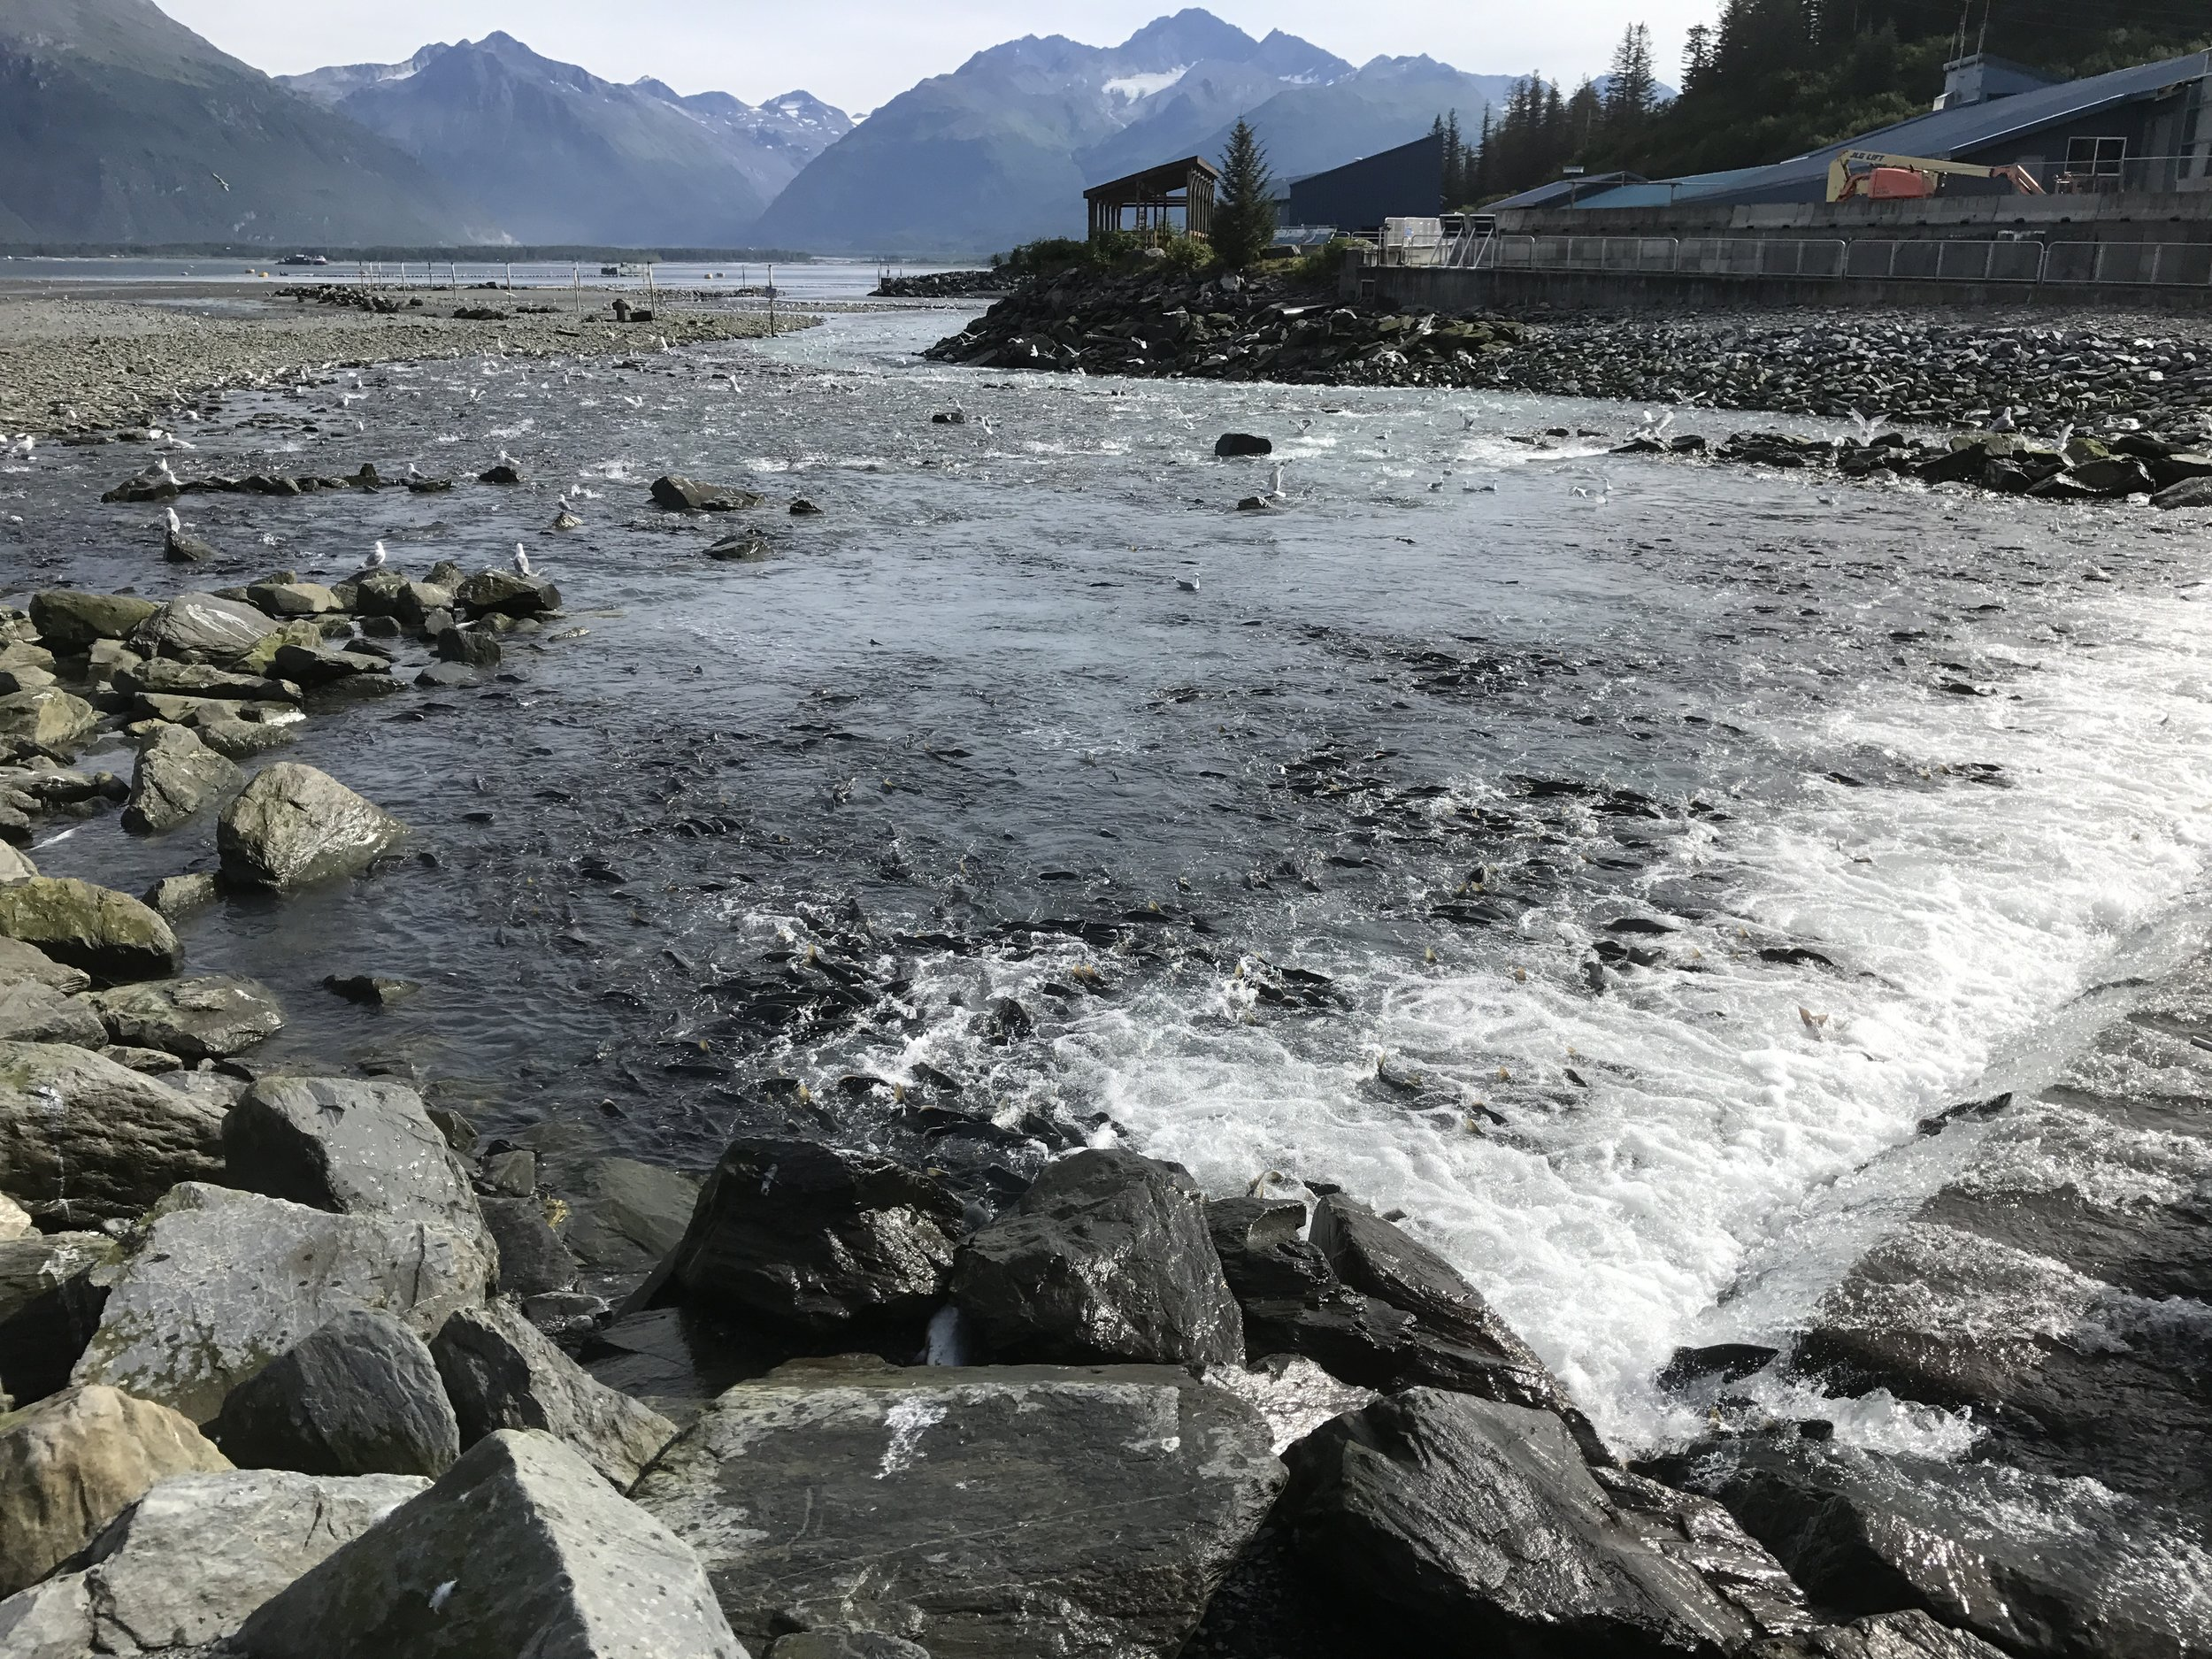 Thousands of salmon returning to the hatchery. Hungry bears also frequent the stream for an easy meal.